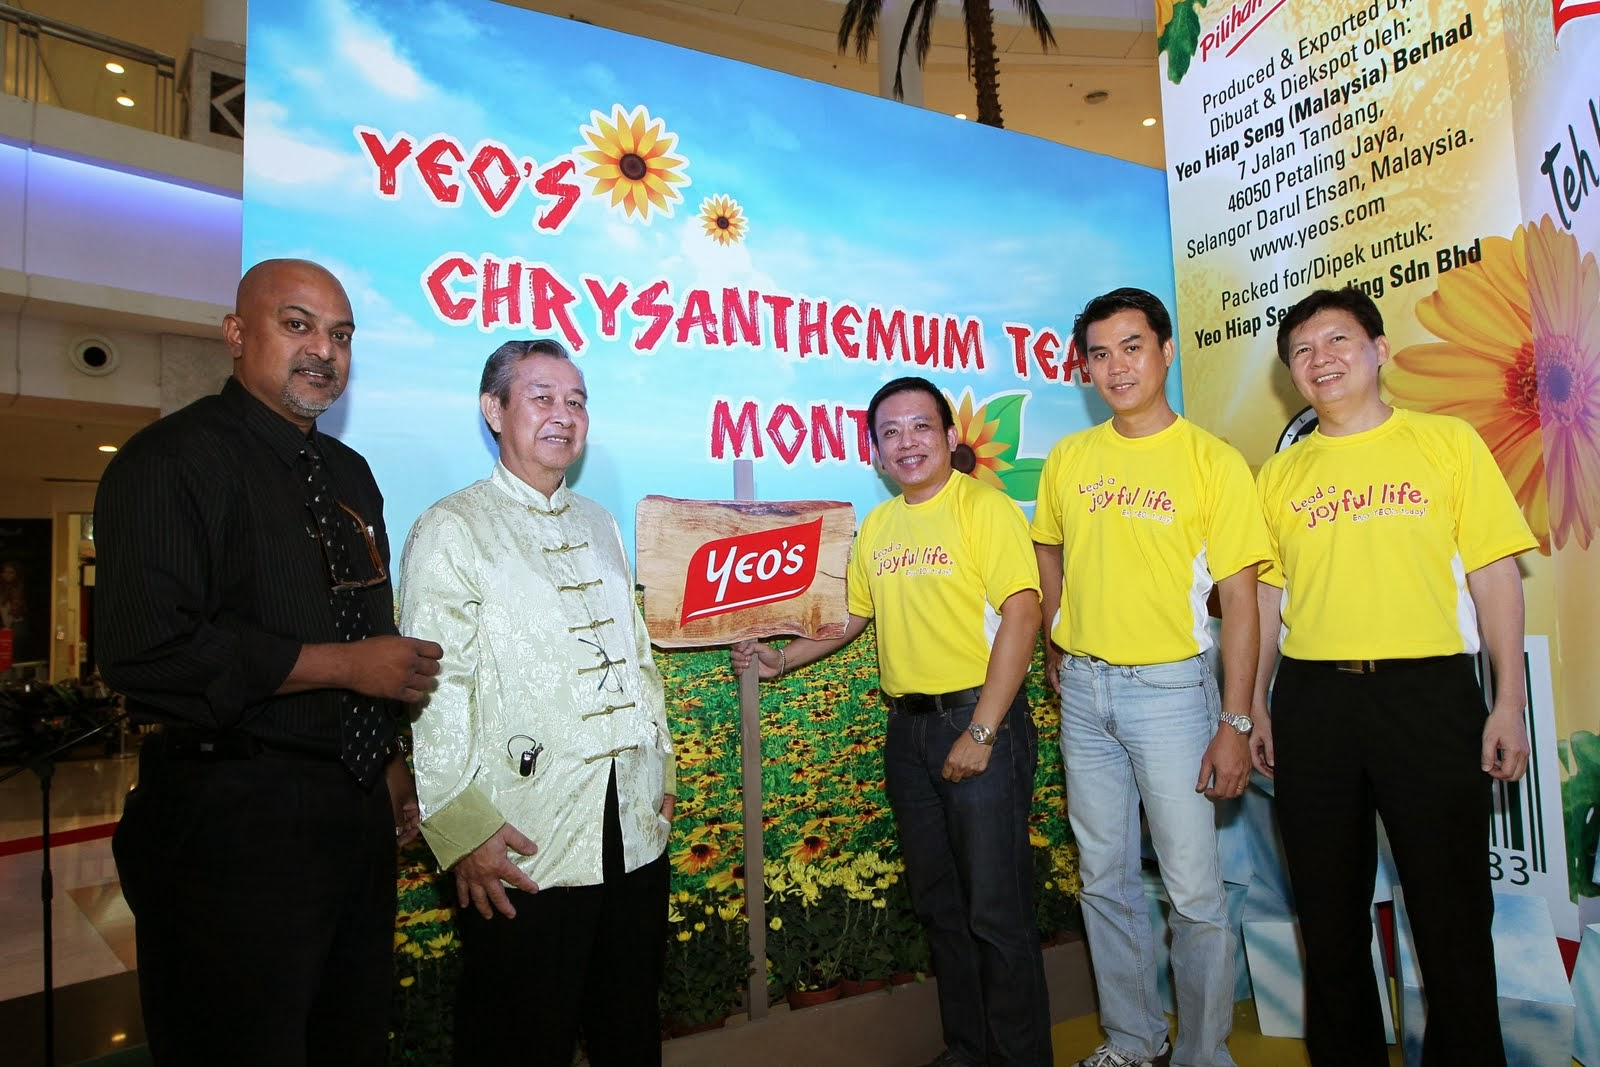 the success story yeo hiap seng News - detailed news story regional news singapore news malaysia news yeo hiap seng last done: 1220: change +0020 please refer to the attached letter to shareholders and annual report in relation to yeo hiap seng limited's sixty-first annual general meeting to be held on 26 april 2017.